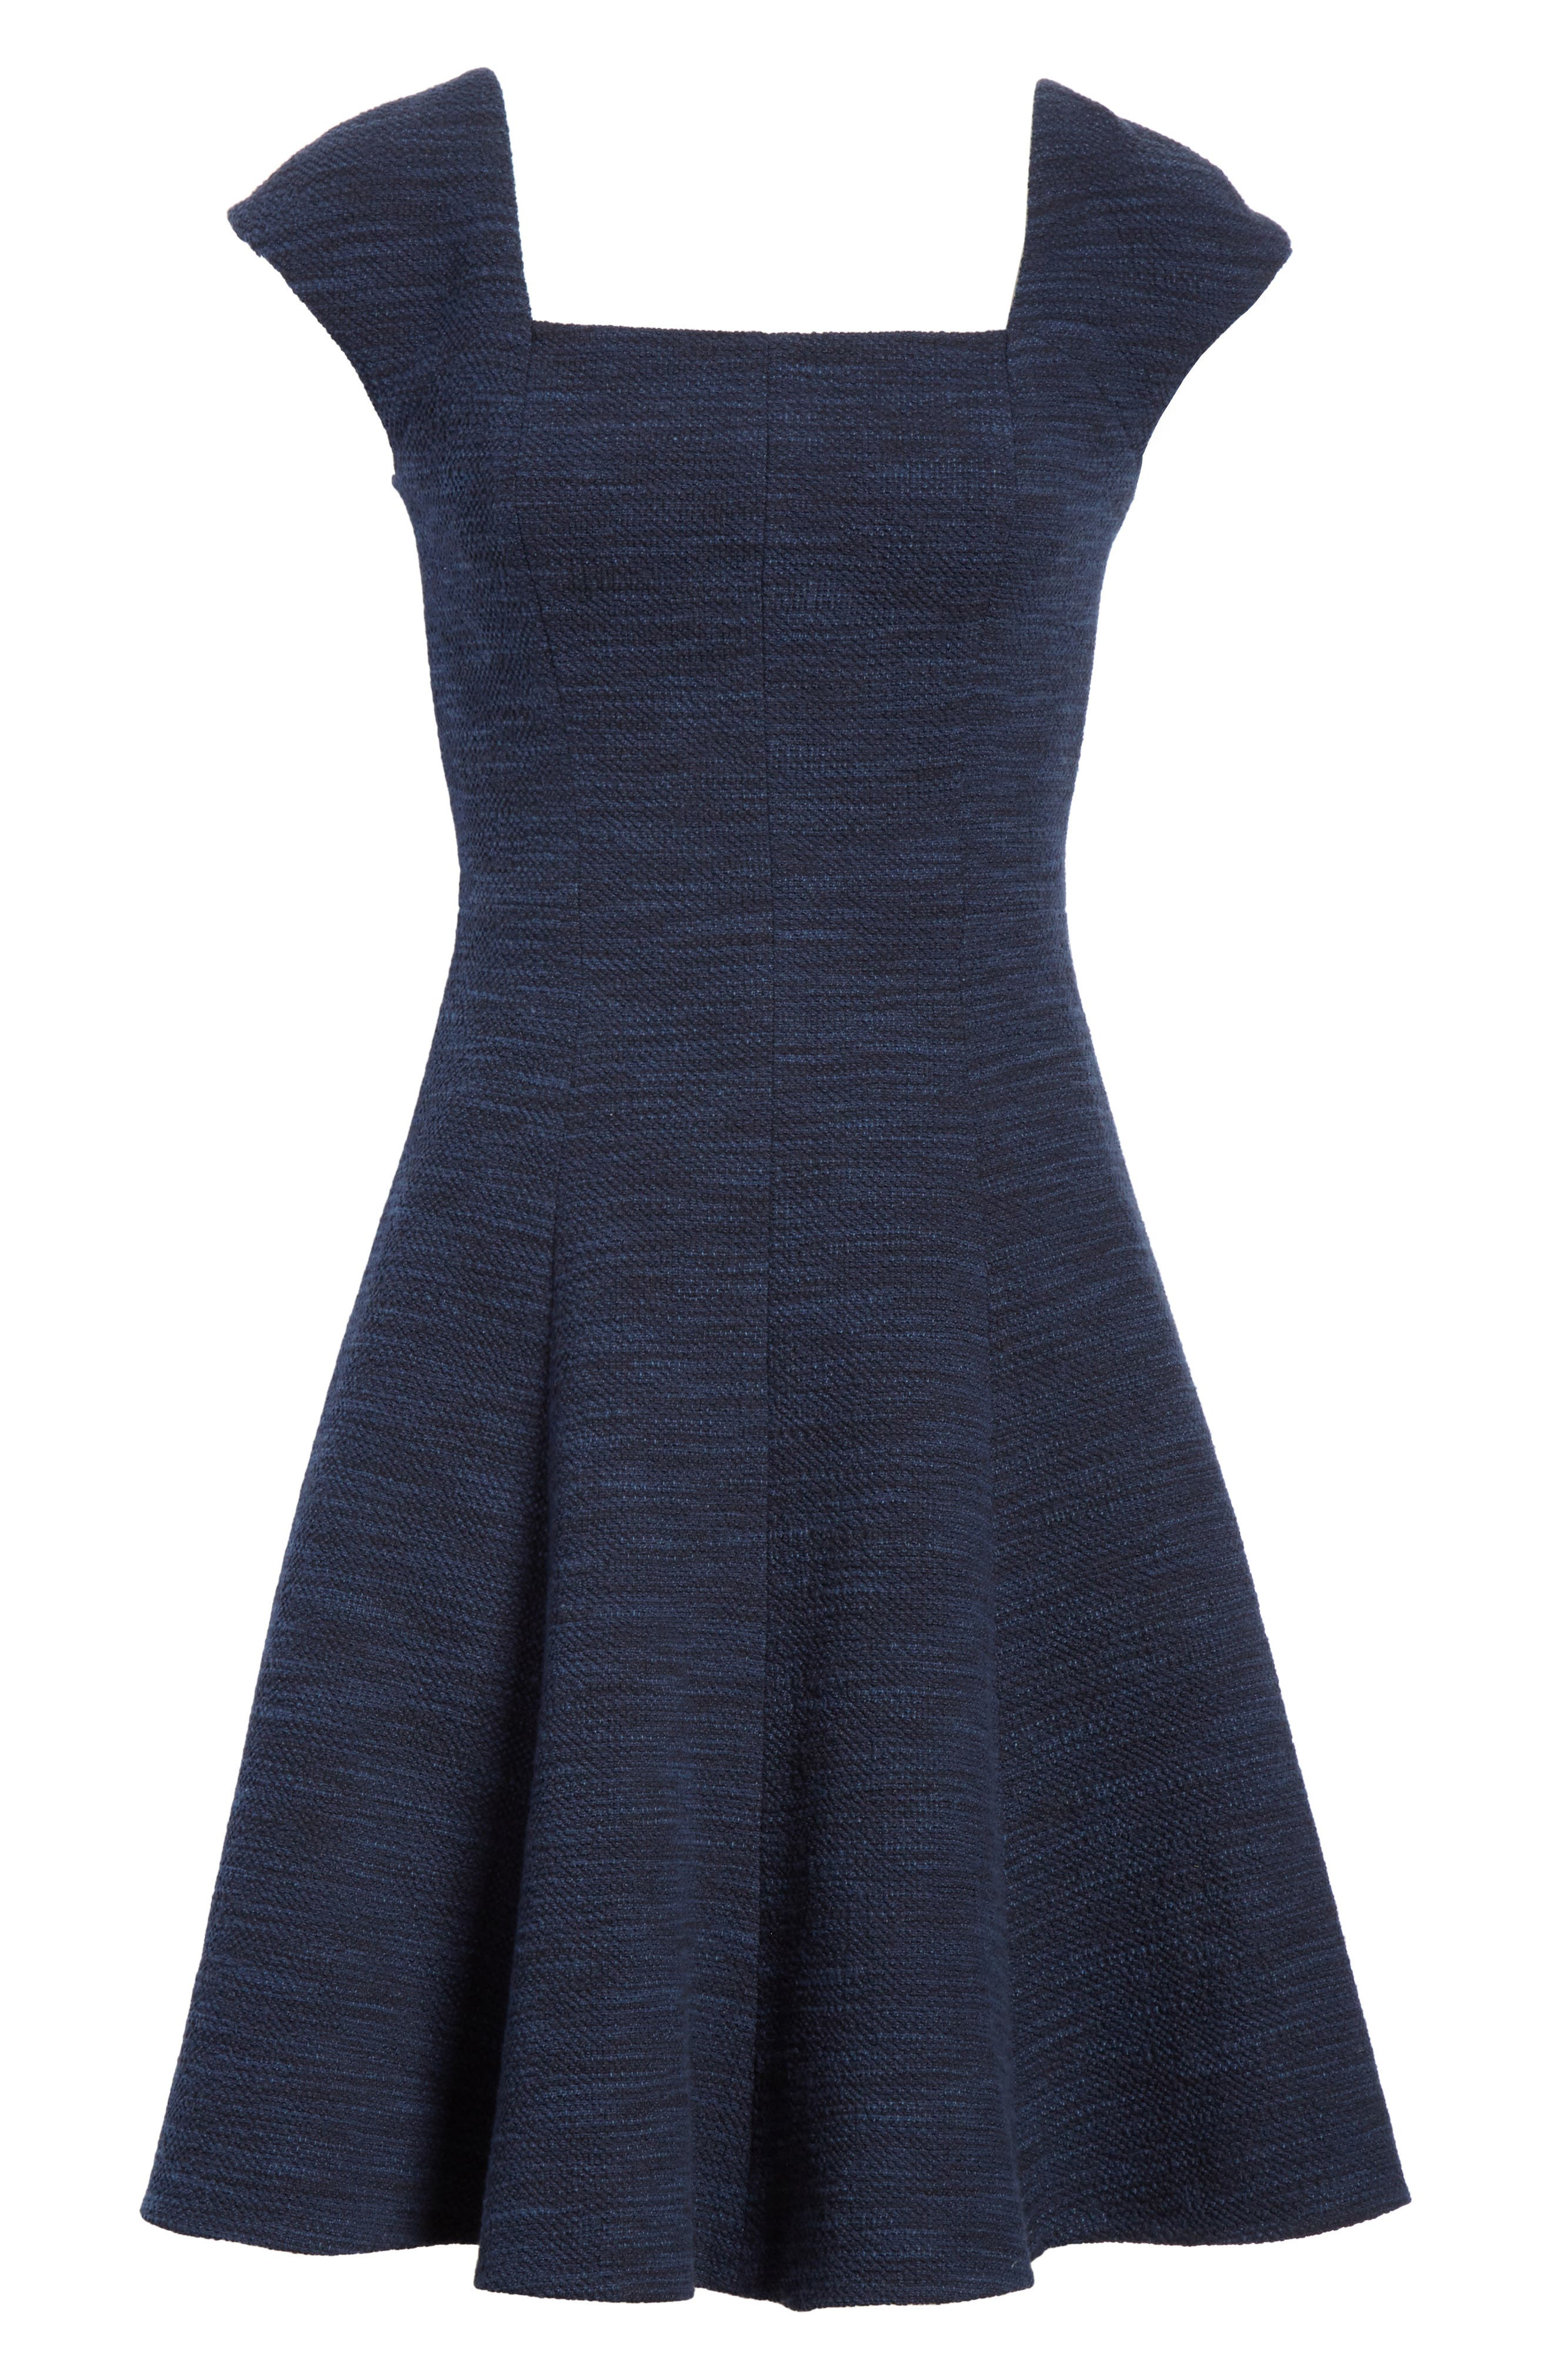 Tweed Fit & Flare Dress,                             Alternate thumbnail 6, color,                             482